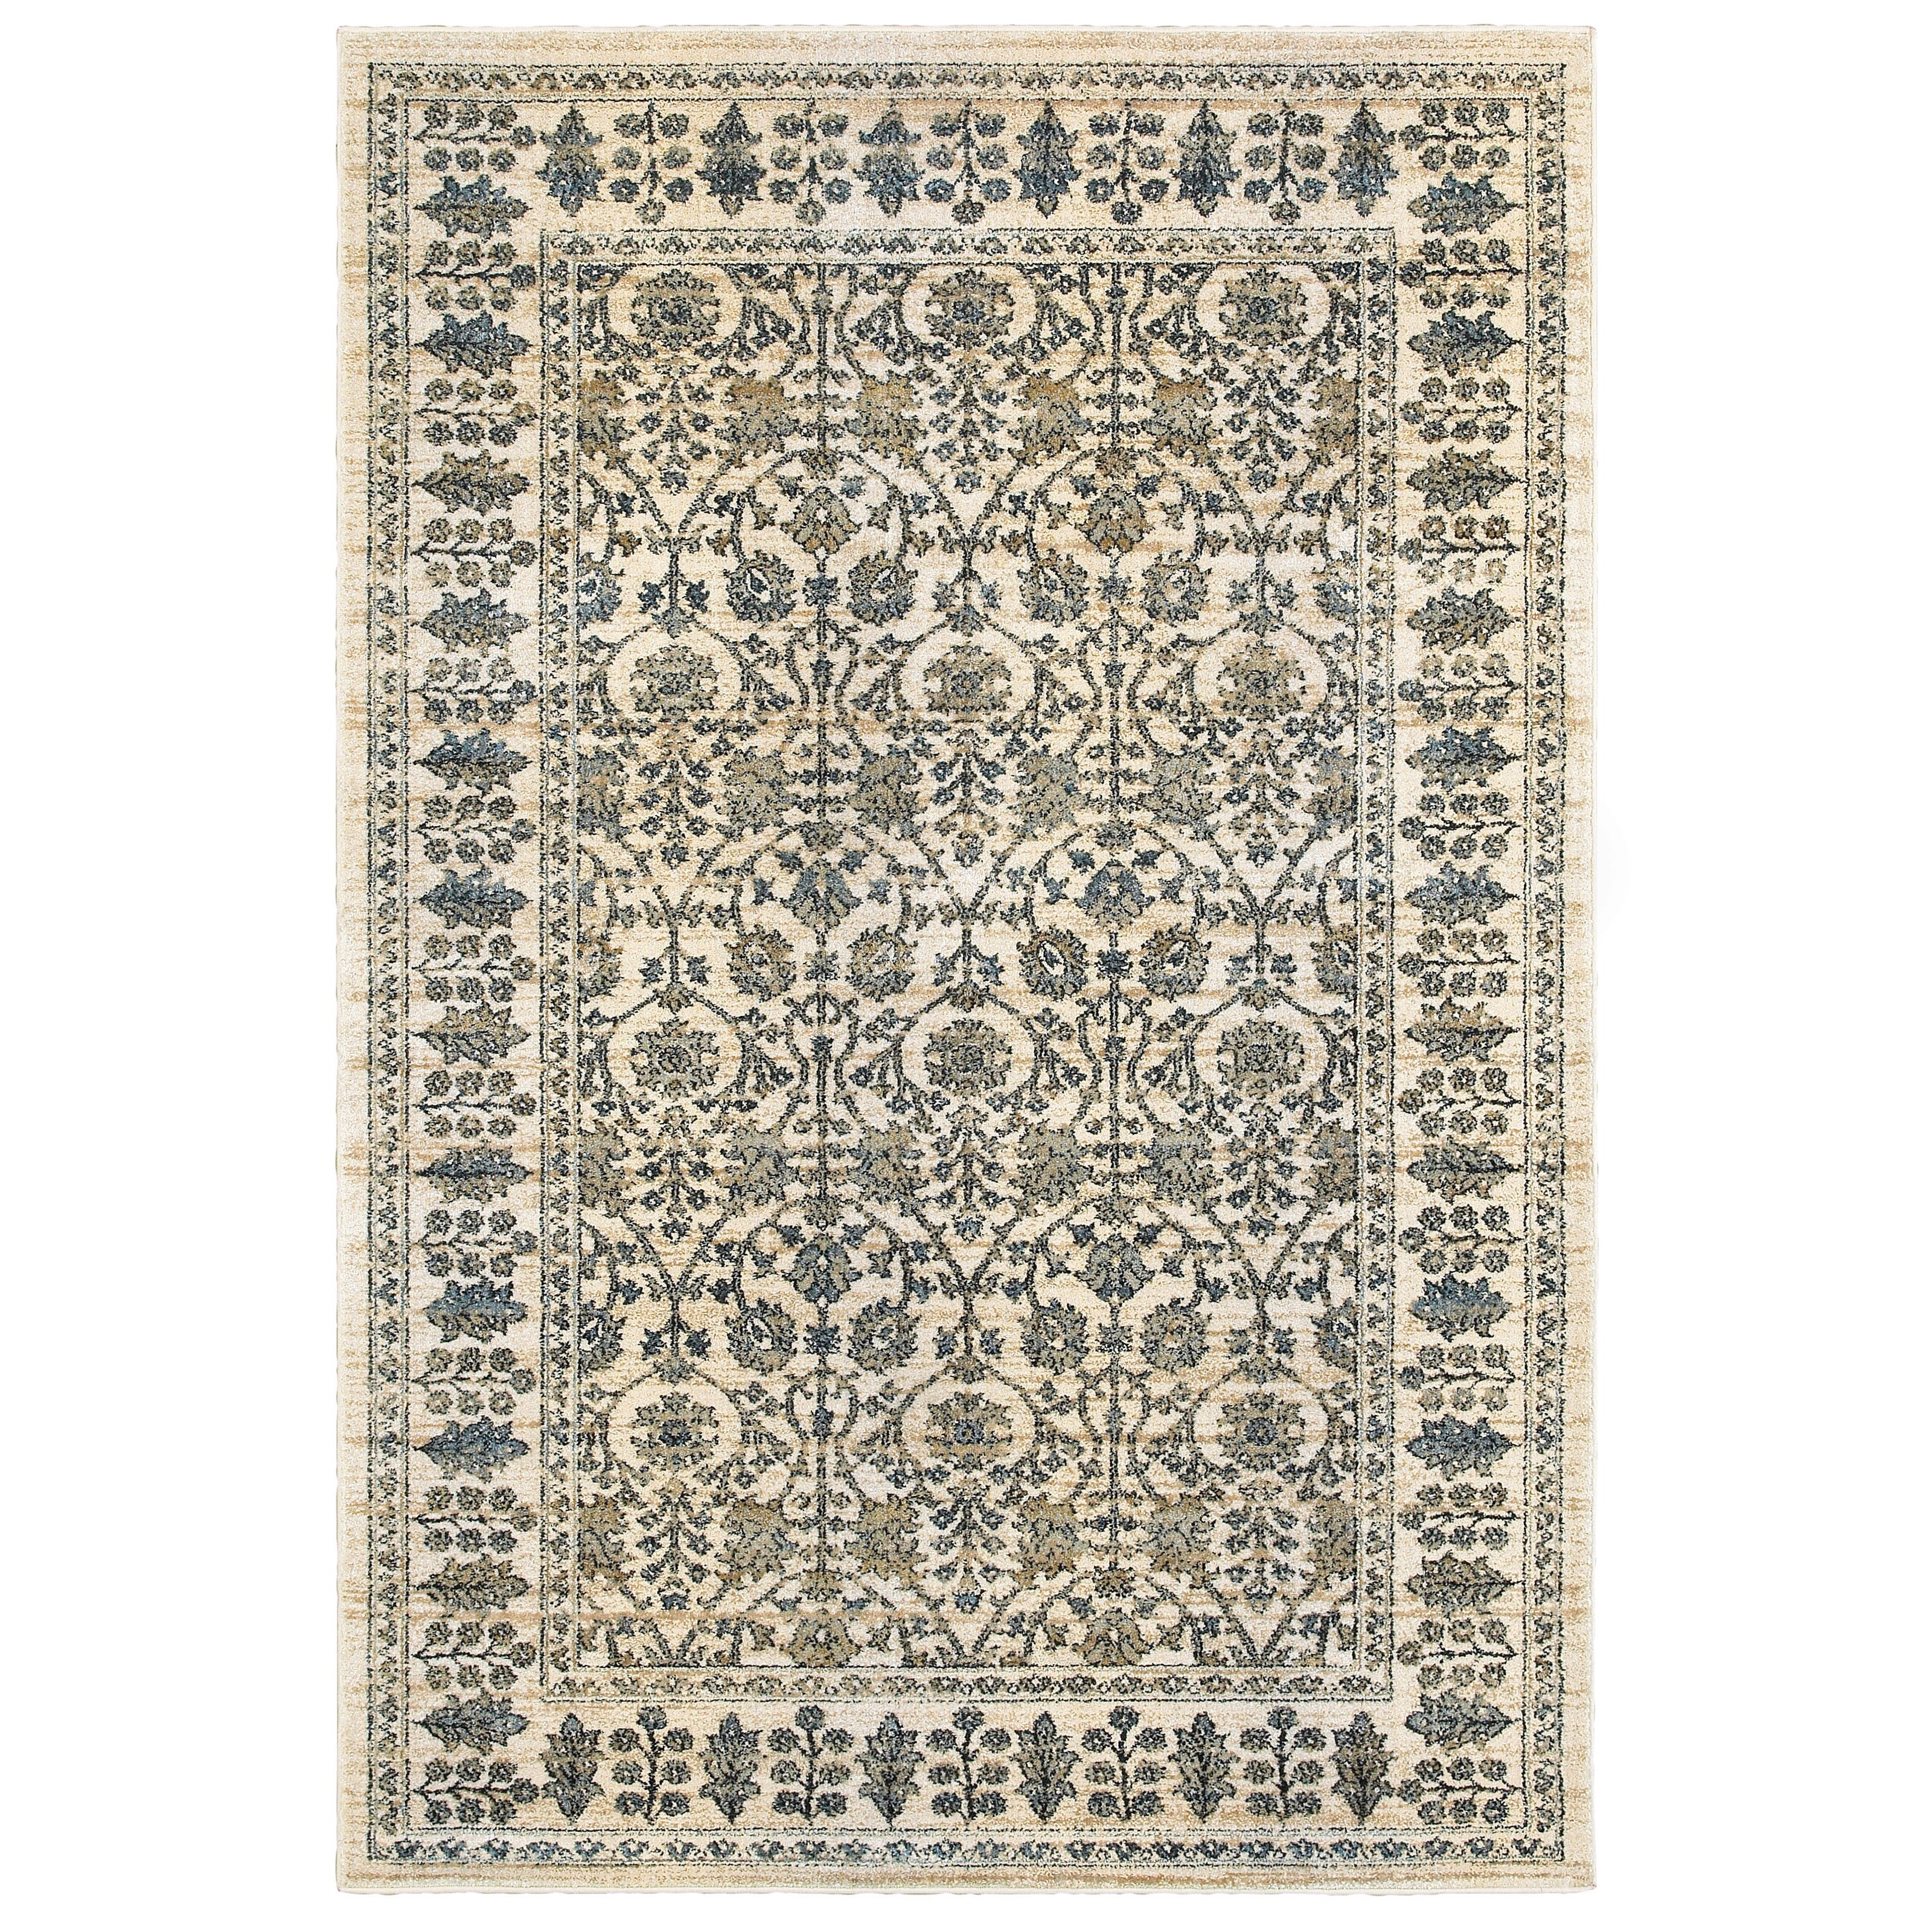 Emberly Floral Borders Area Rug Overstock 12990356